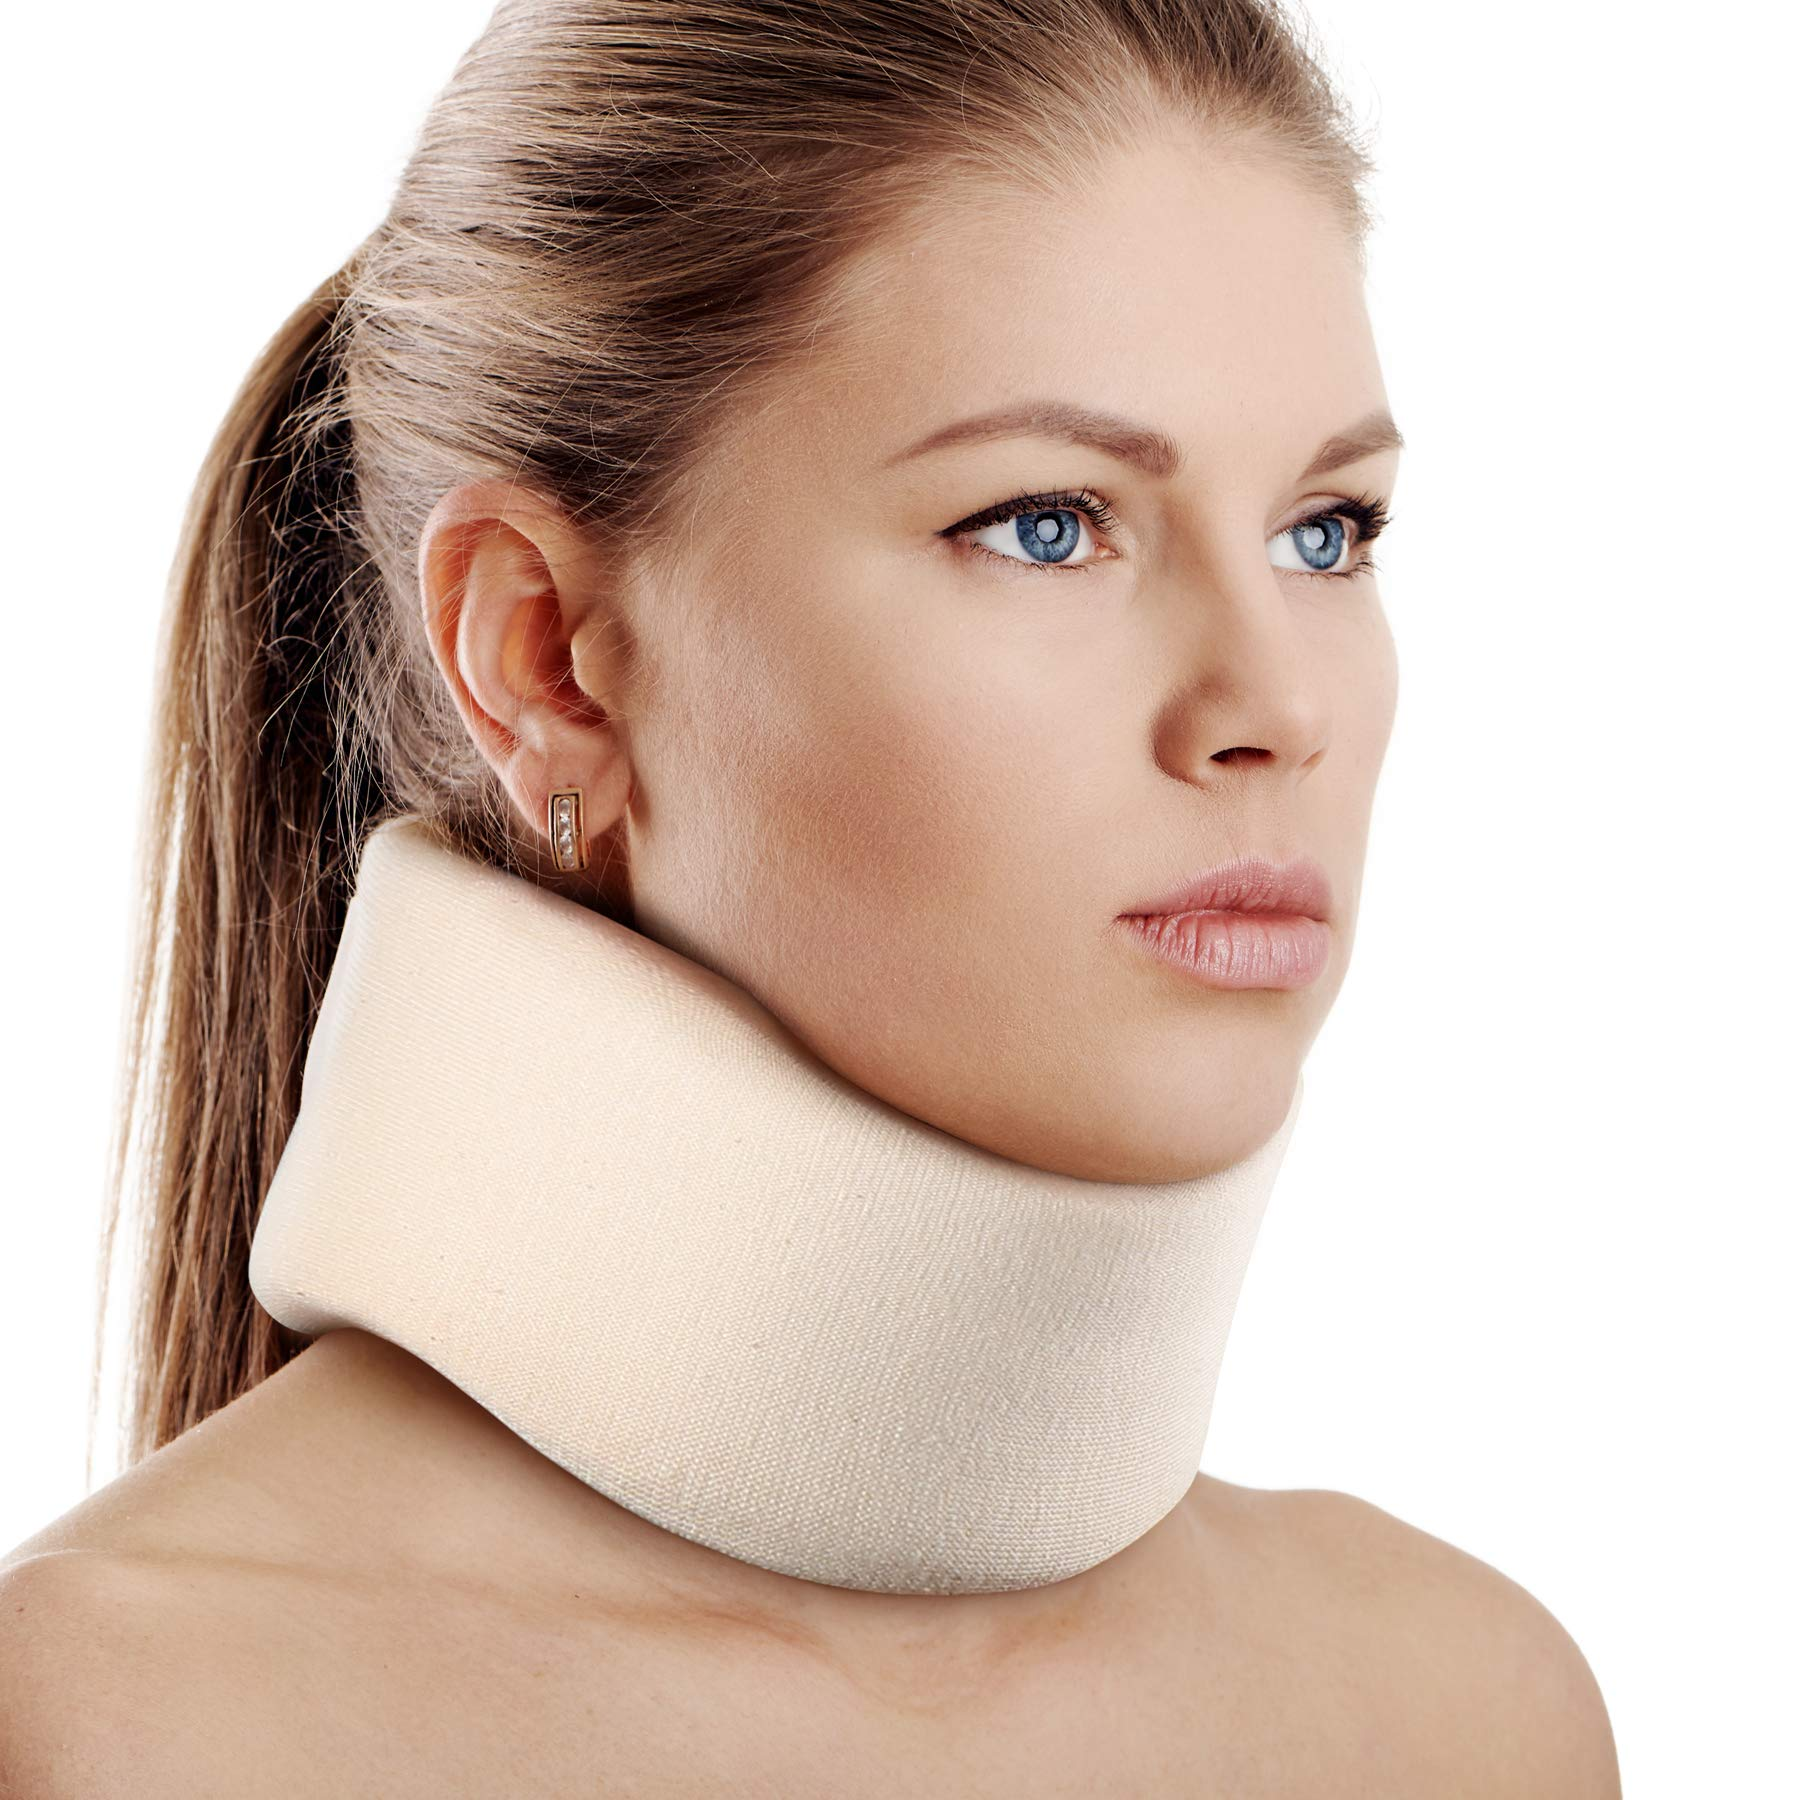 "Soft Foam Neck Brace Universal Cervical Collar, Adjustable Neck Support Brace for Sleeping - Relieves Neck Pain and Spine Pressure, Neck Collar After Whiplash or Injury (3"" Depth Collar, XL)"